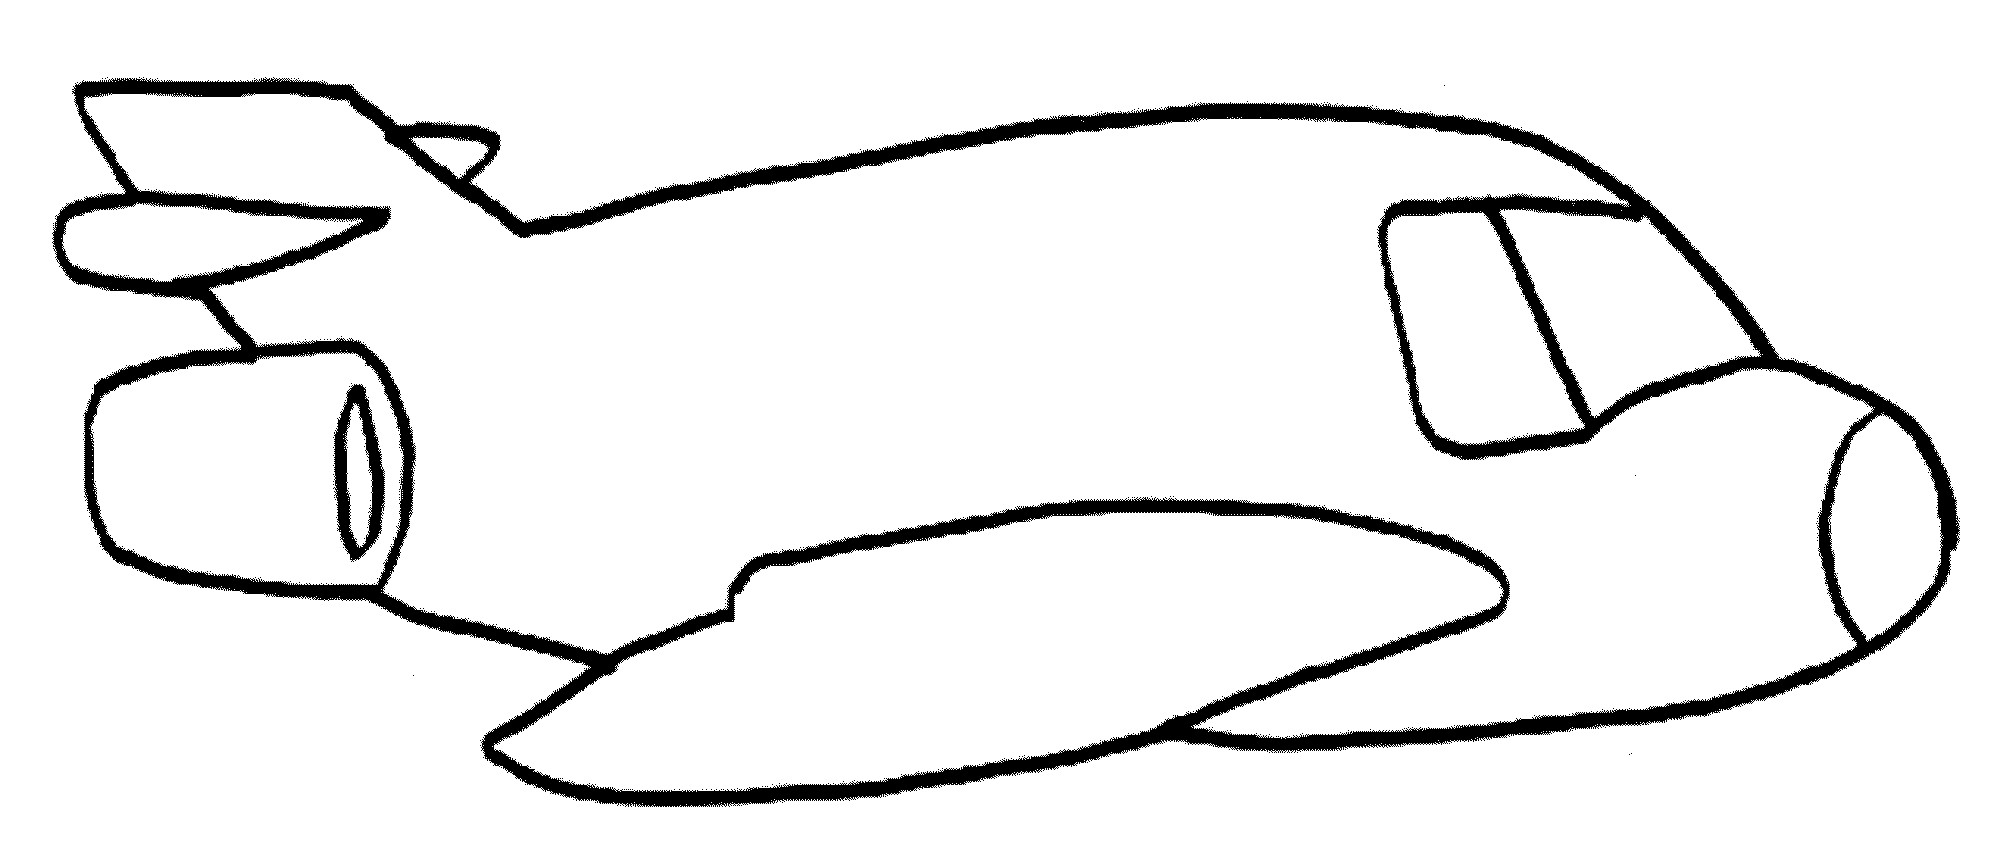 Best ideas about Airplane Coloring Pages For Kids . Save or Pin airplane coloring pages for kids Now.